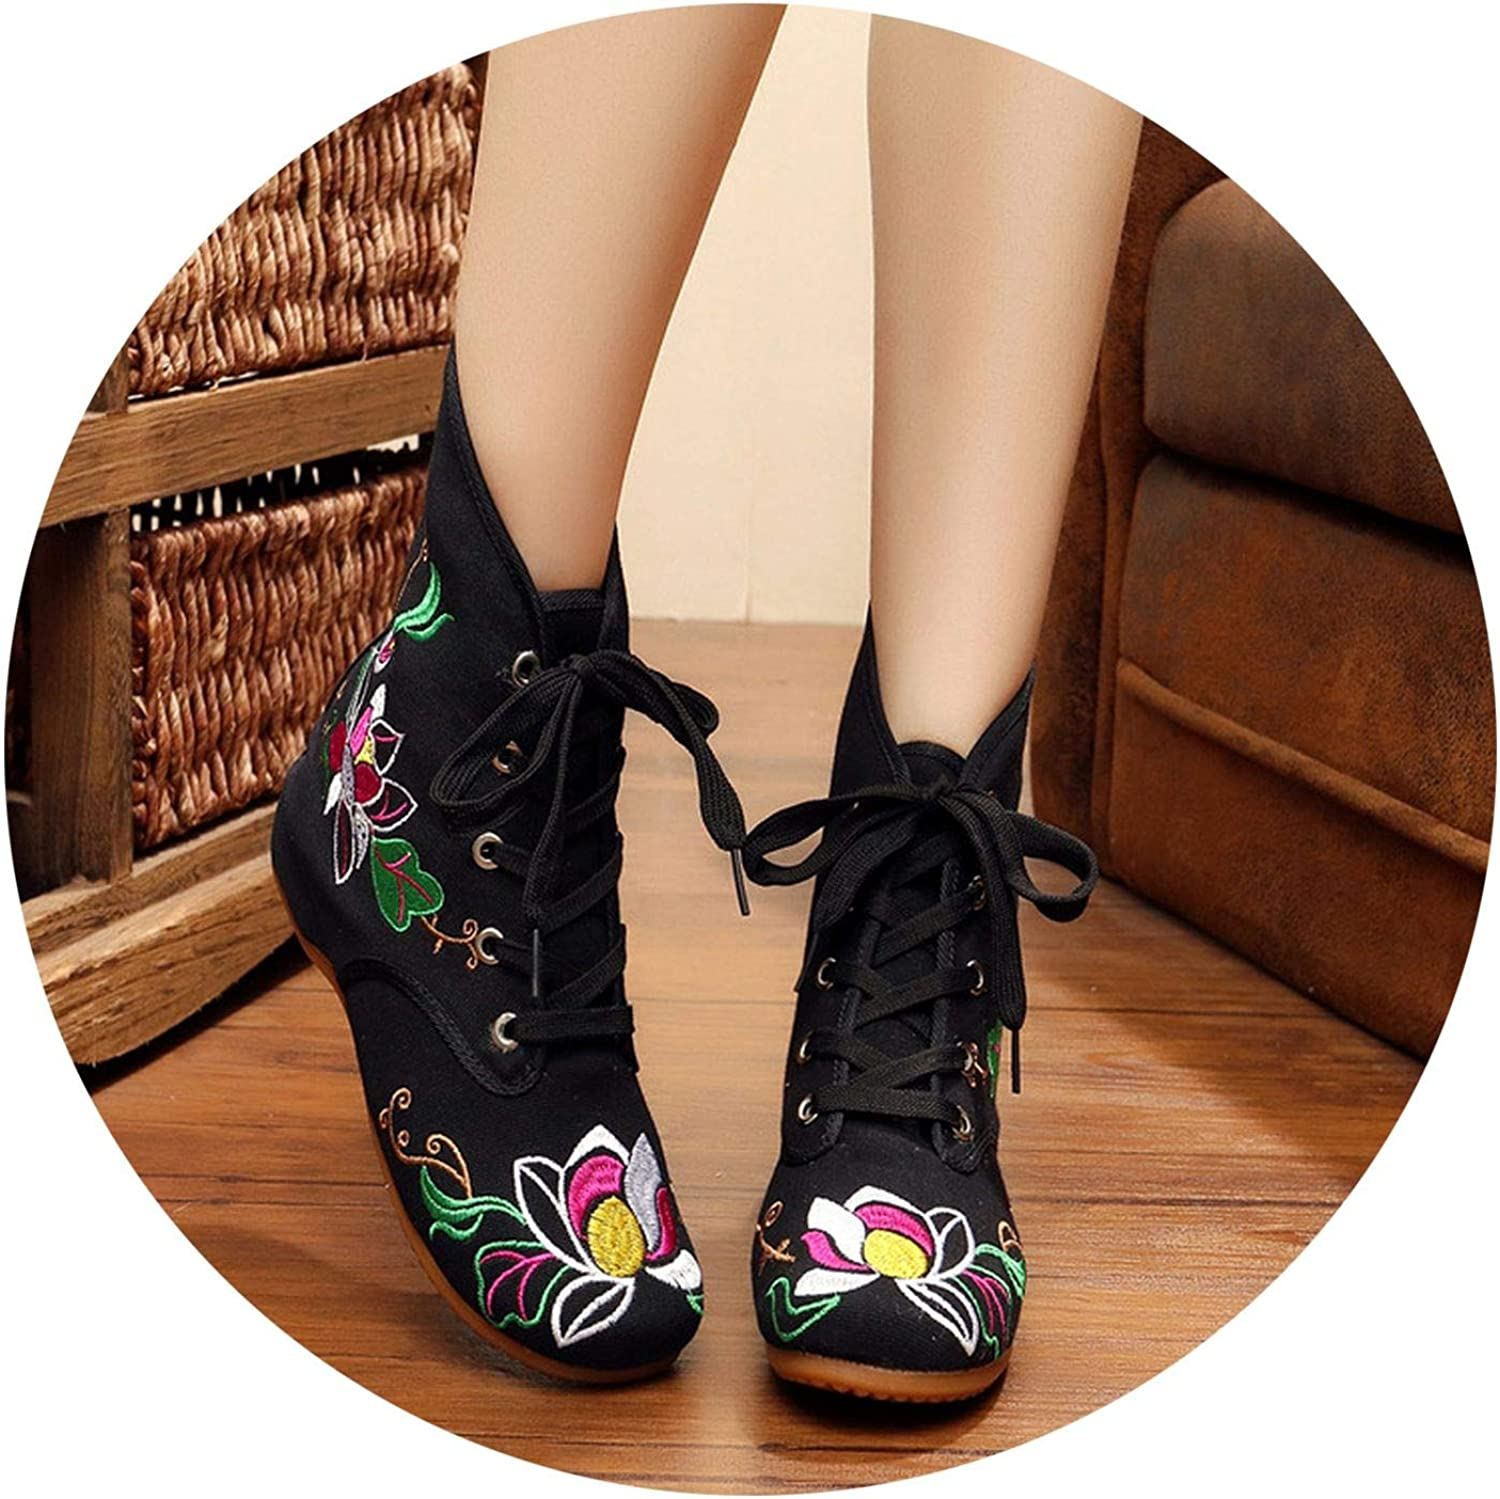 Superb Zone Spring Women shoes Embroidered Canvas shoes Increased Boots,Black,5